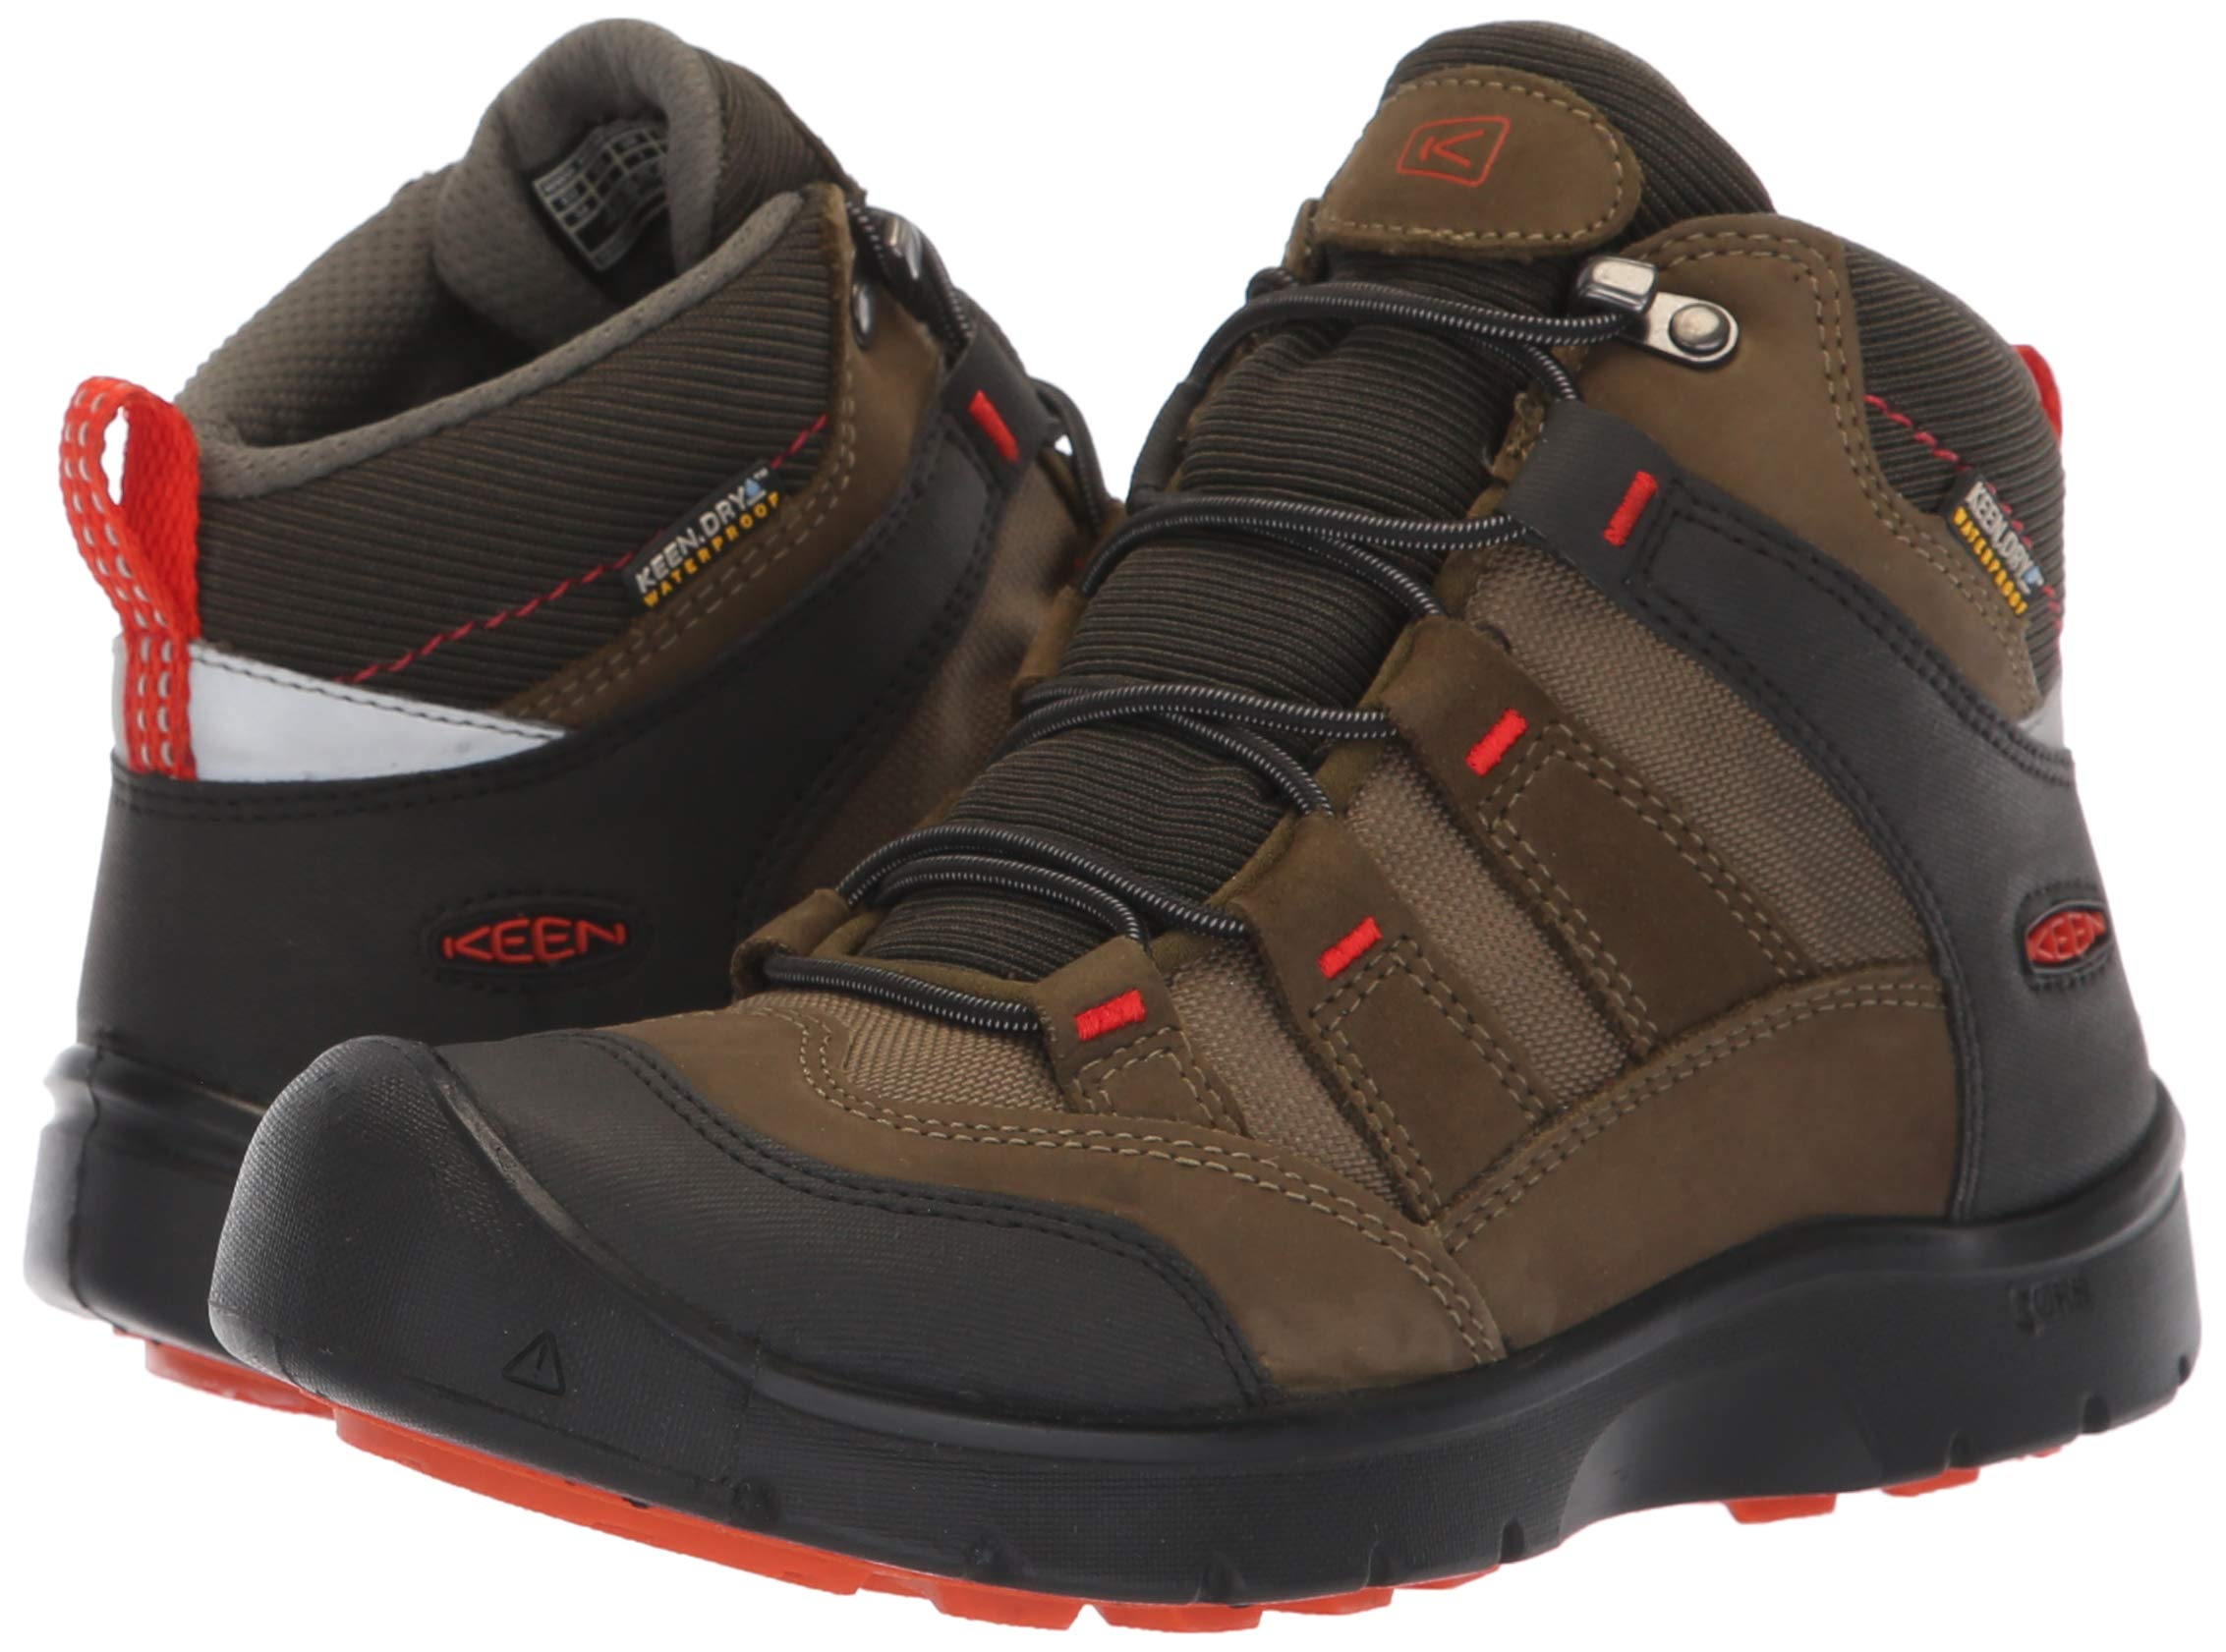 KEEN Unisex HIKEPORT MID WP Hiking Boot, Martini Olive/pureed Pumpkin, 12 M US Little Kid by KEEN (Image #6)